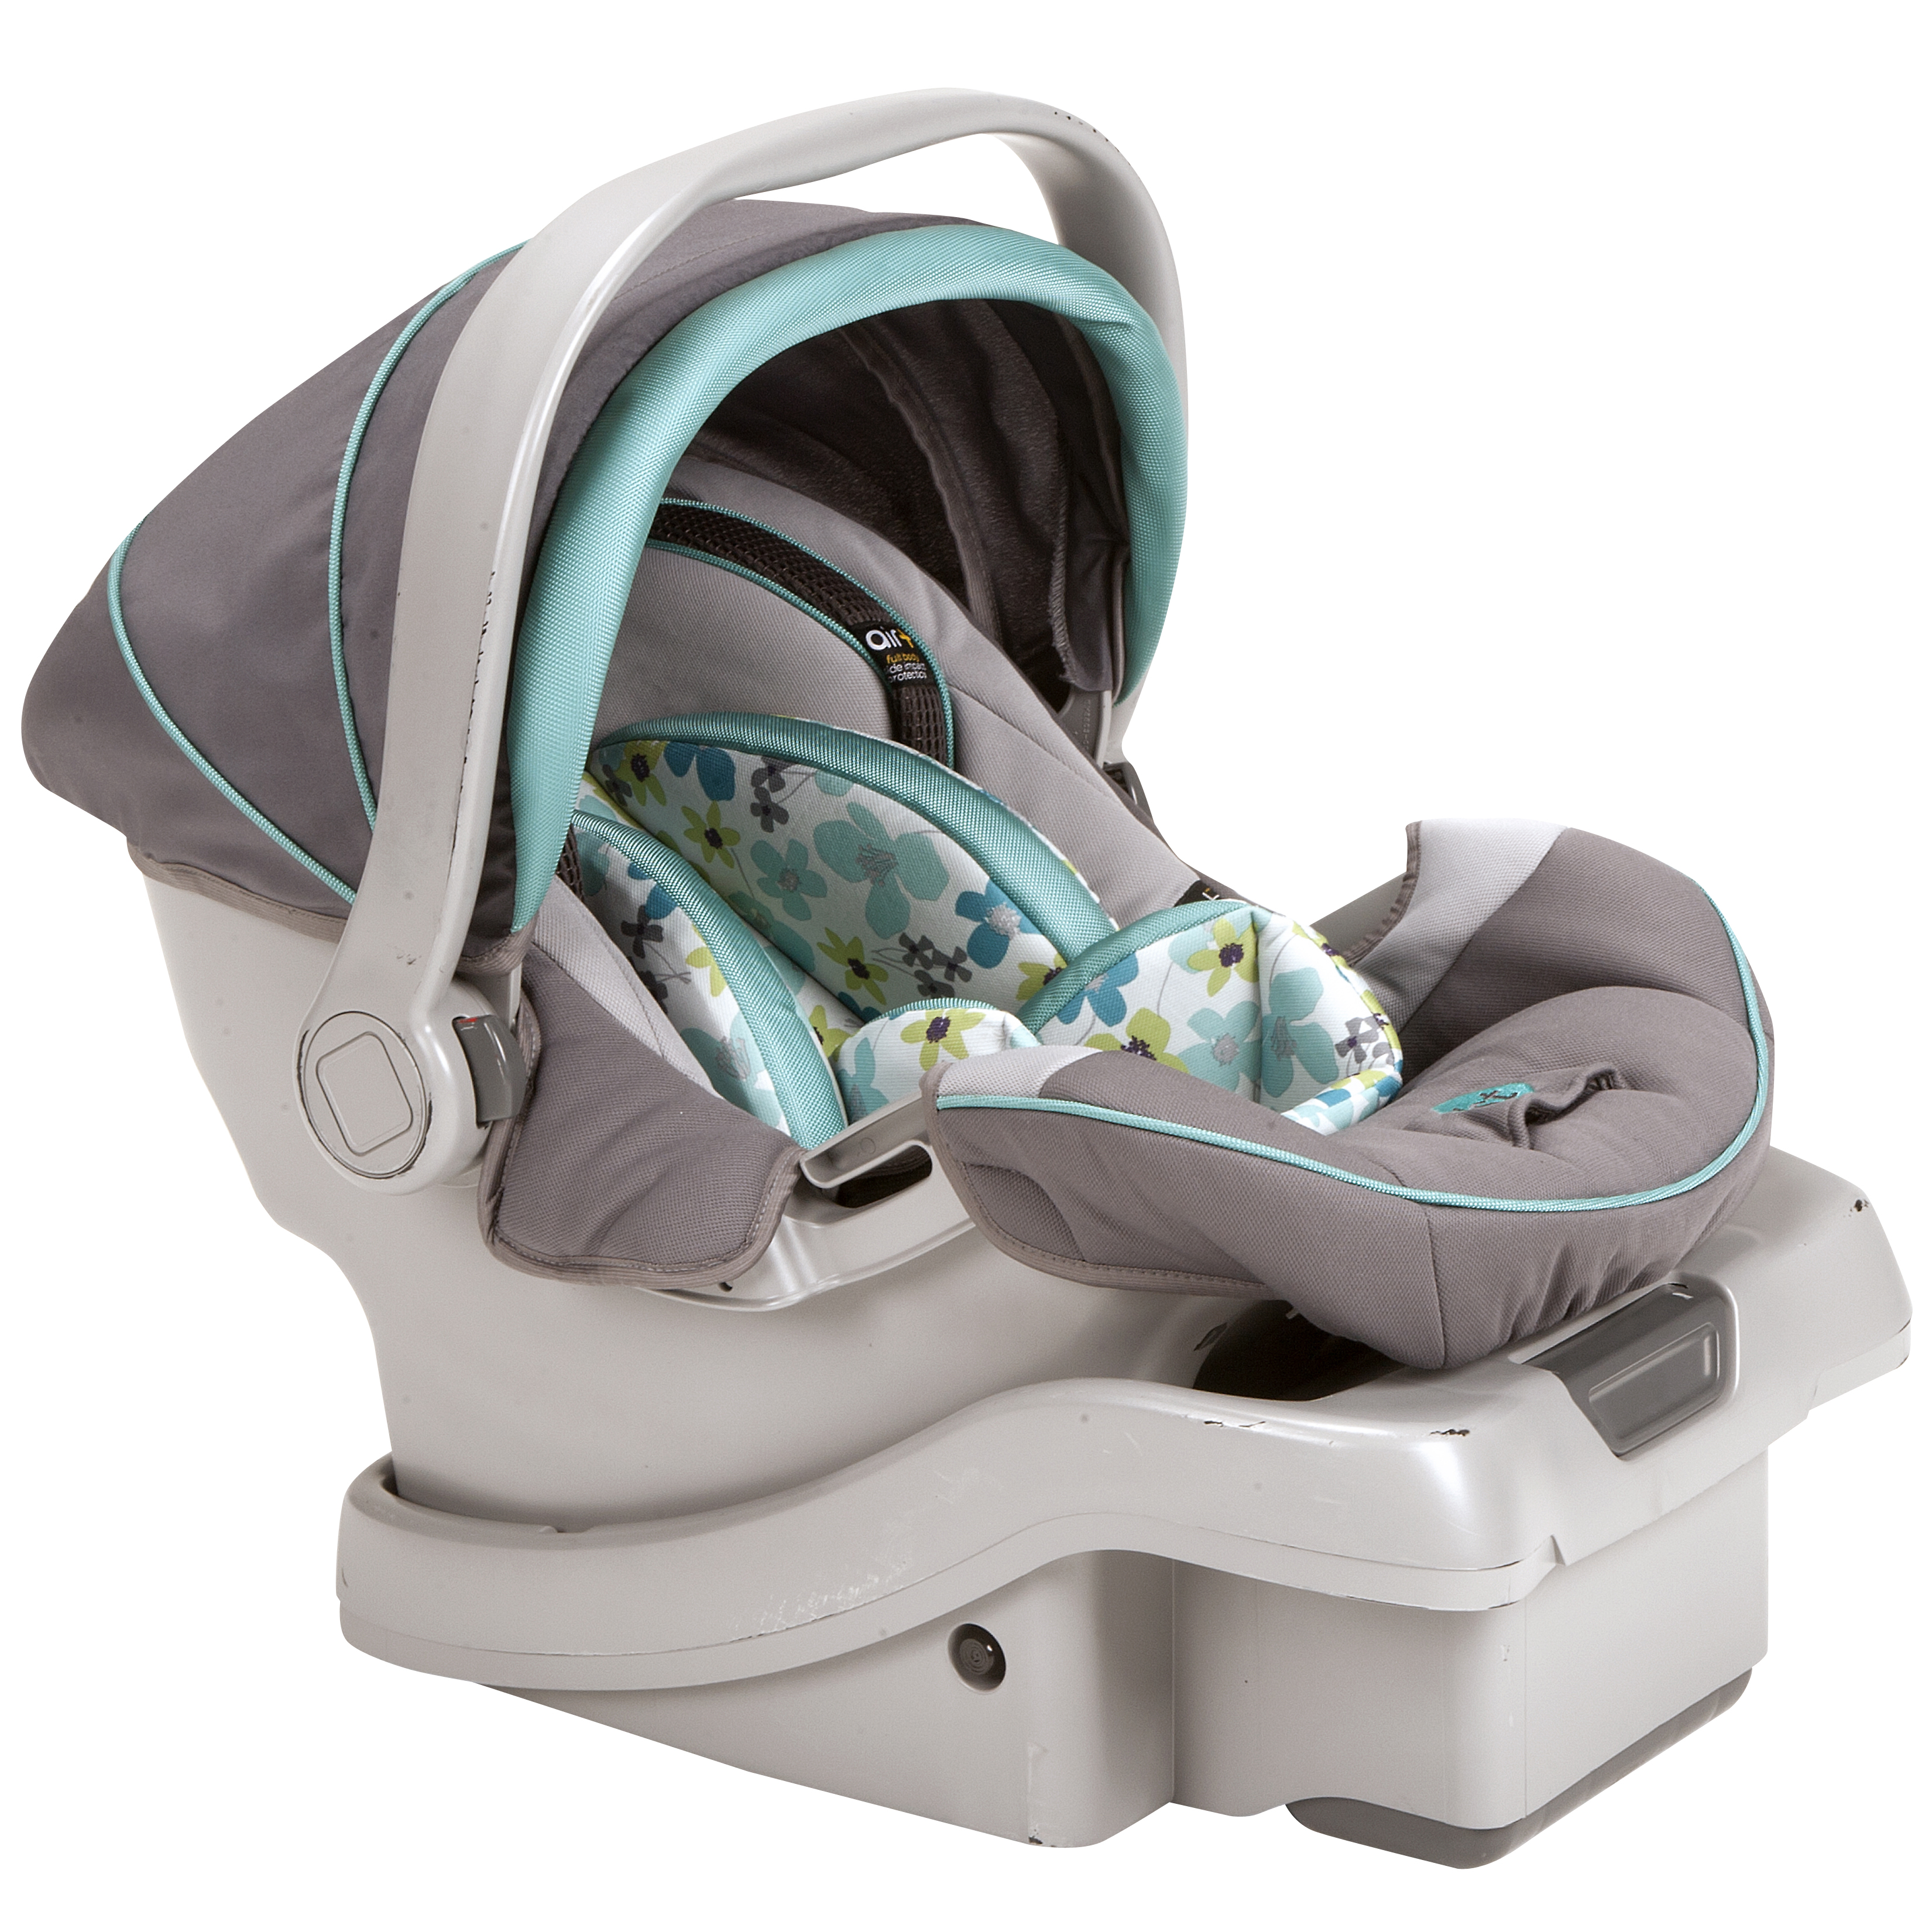 onBoard™35 Air Protect+ Infant Car Seat - Plumberry